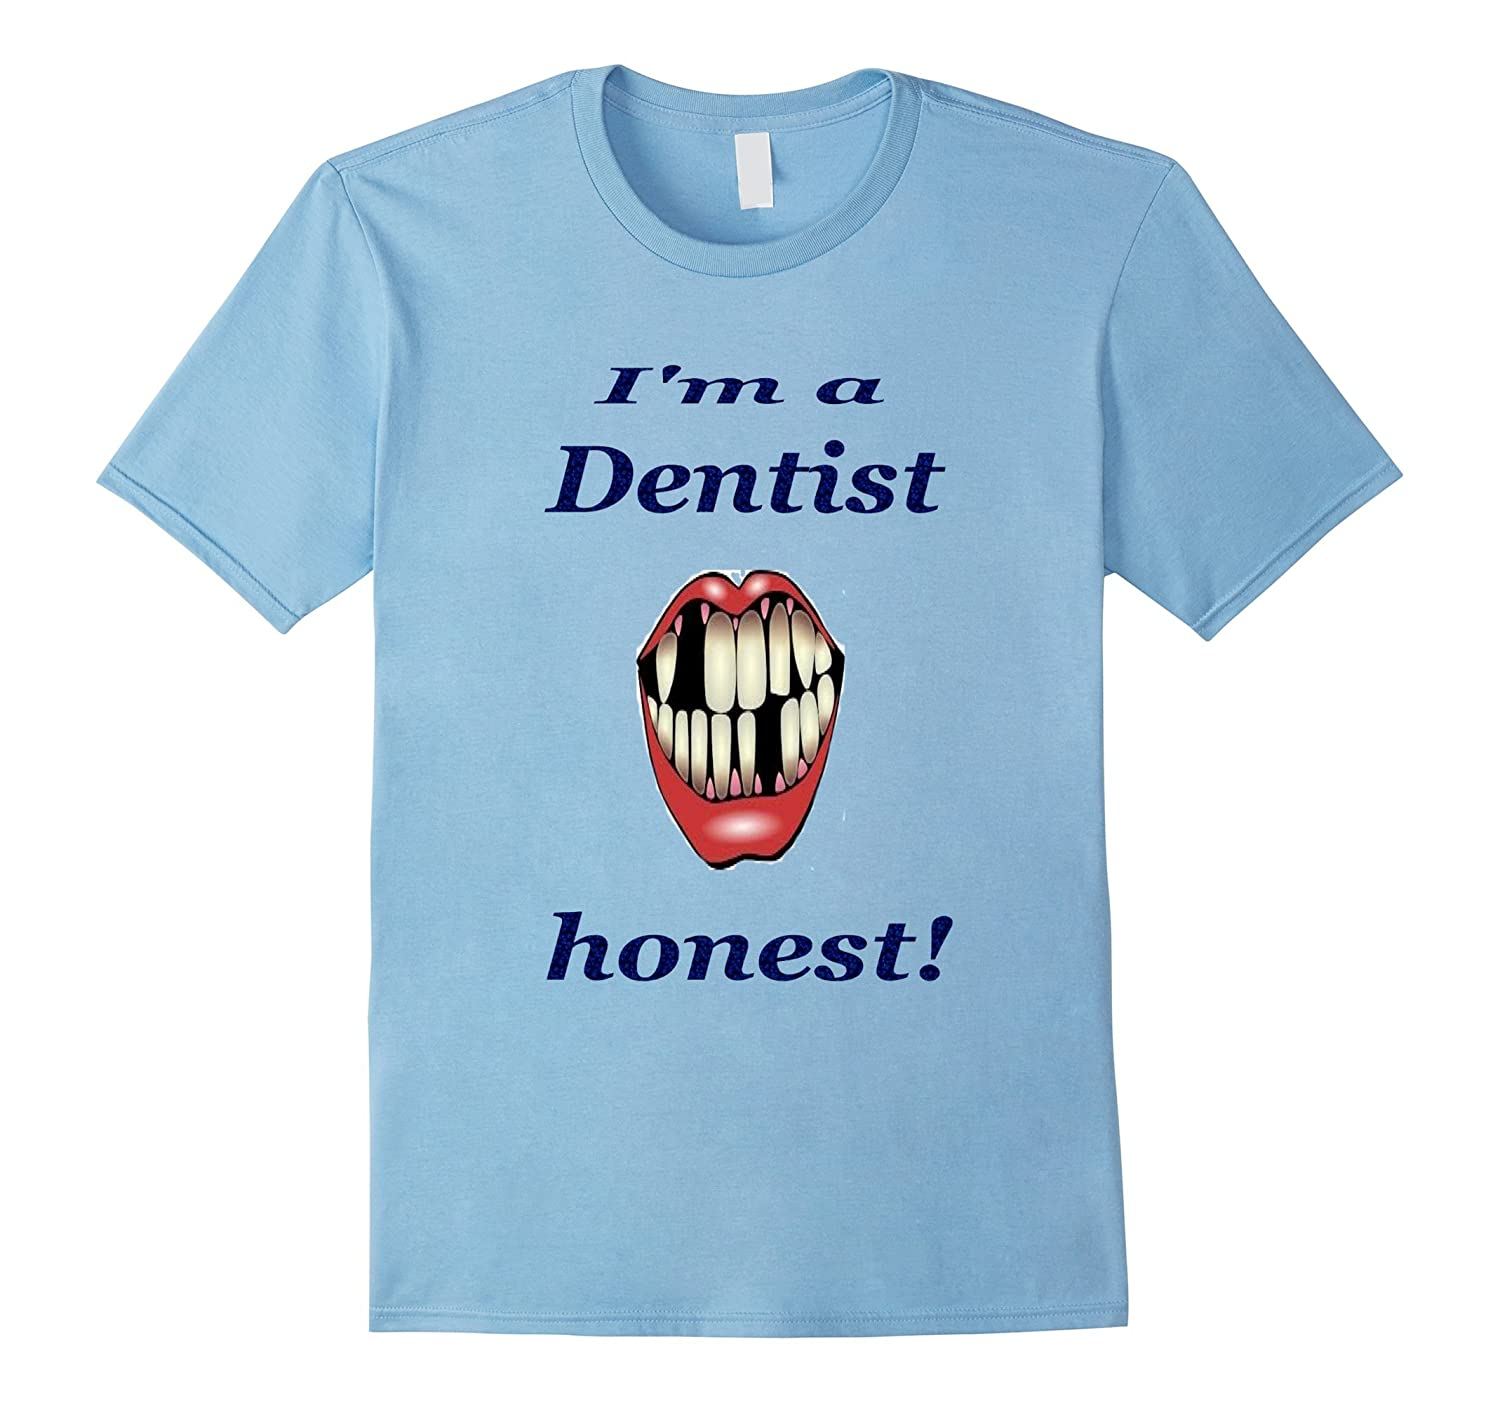 Im a Dentist honest tshirt design by Amazshirt-TD